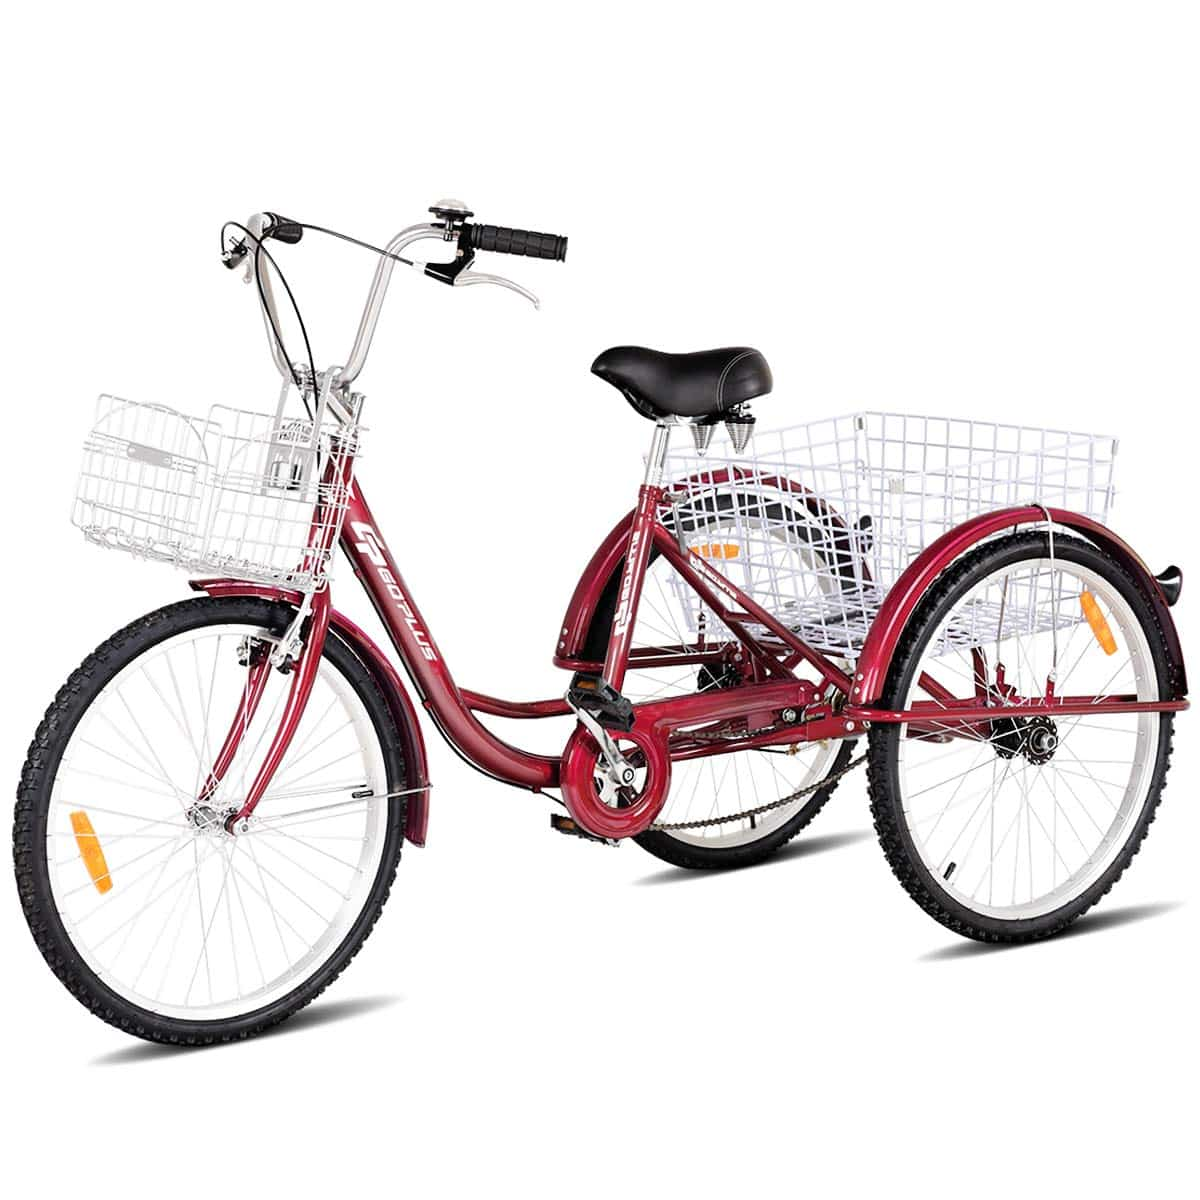 Ride on Tricycles